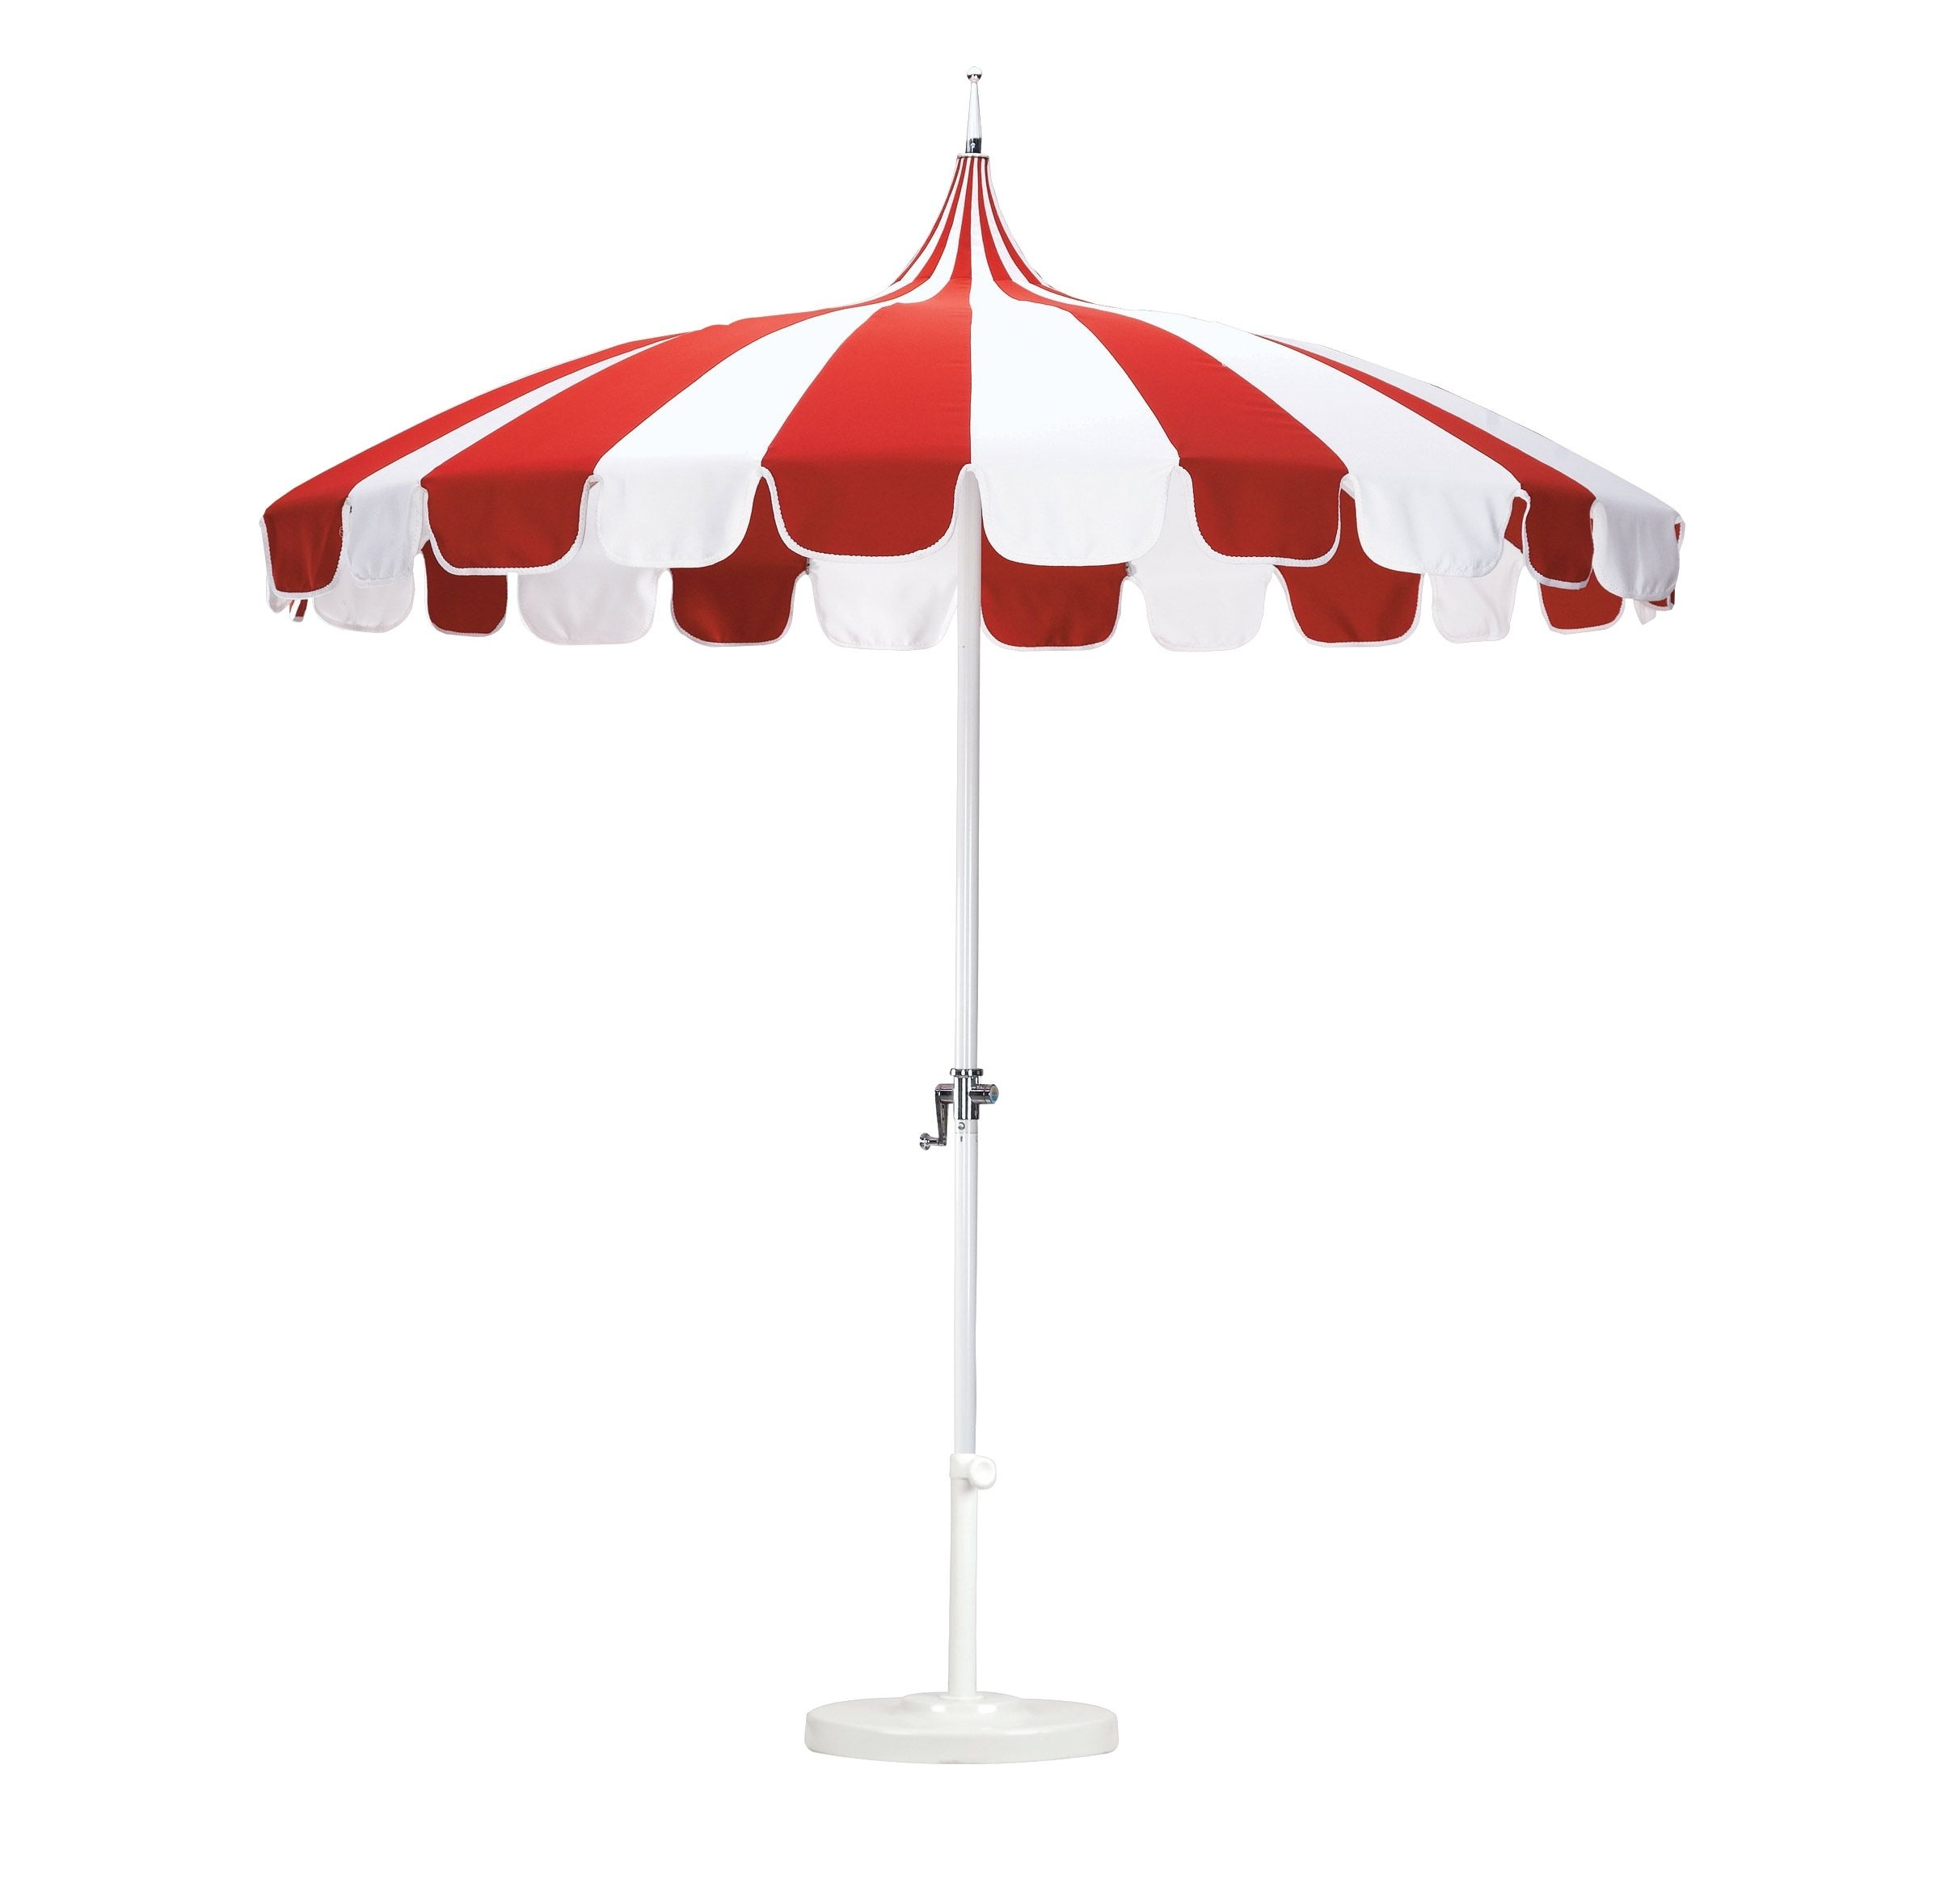 Popular Sunbrella Patio Umbrella Look More At Http://besthomezone Intended For Sunbrella Patio Umbrellas (Gallery 9 of 20)